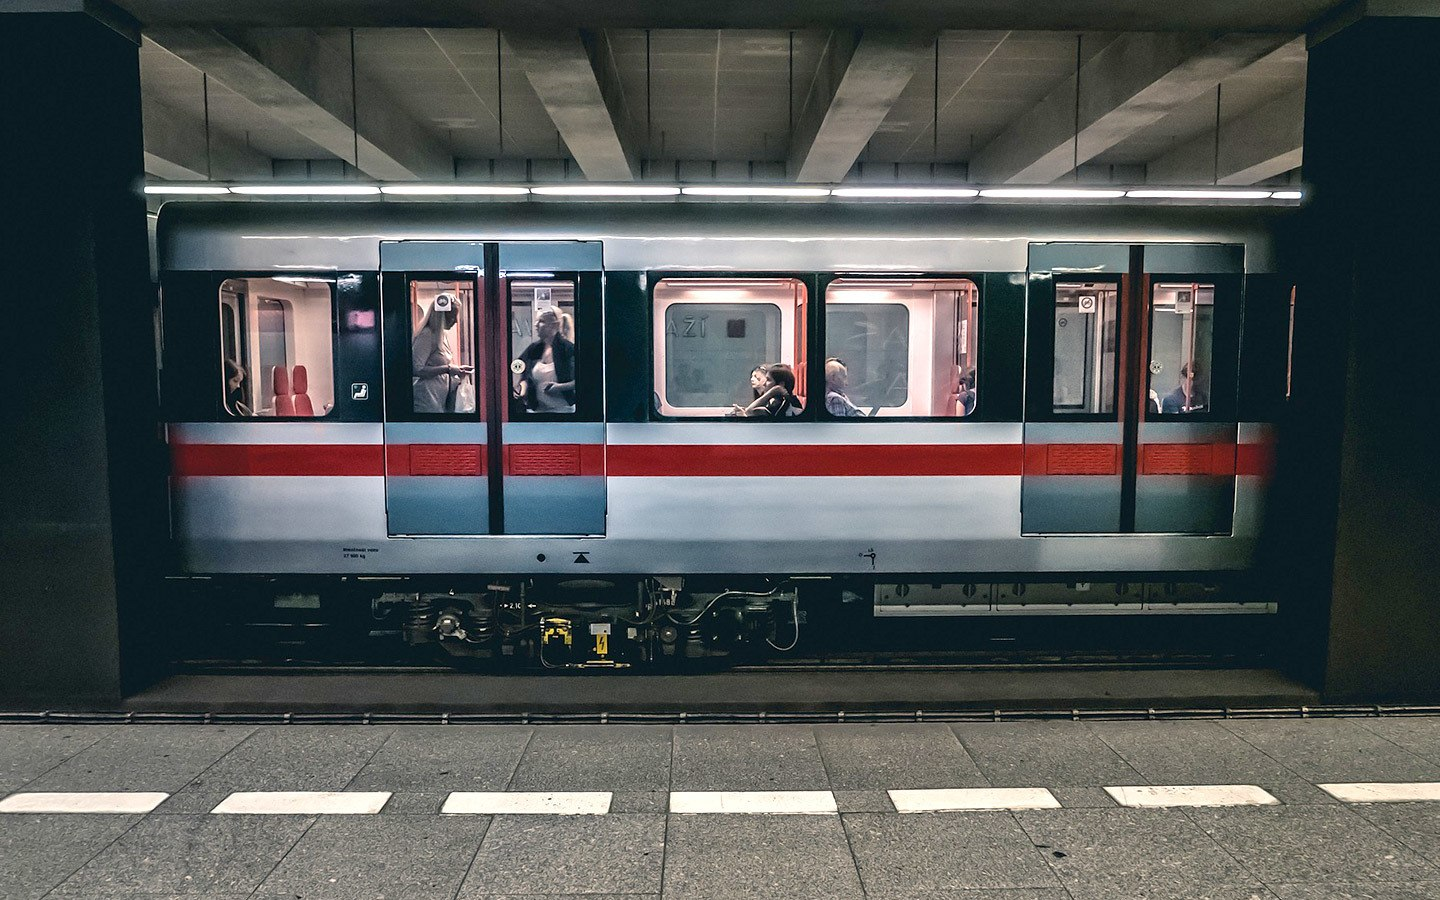 Prague Metro train in a station